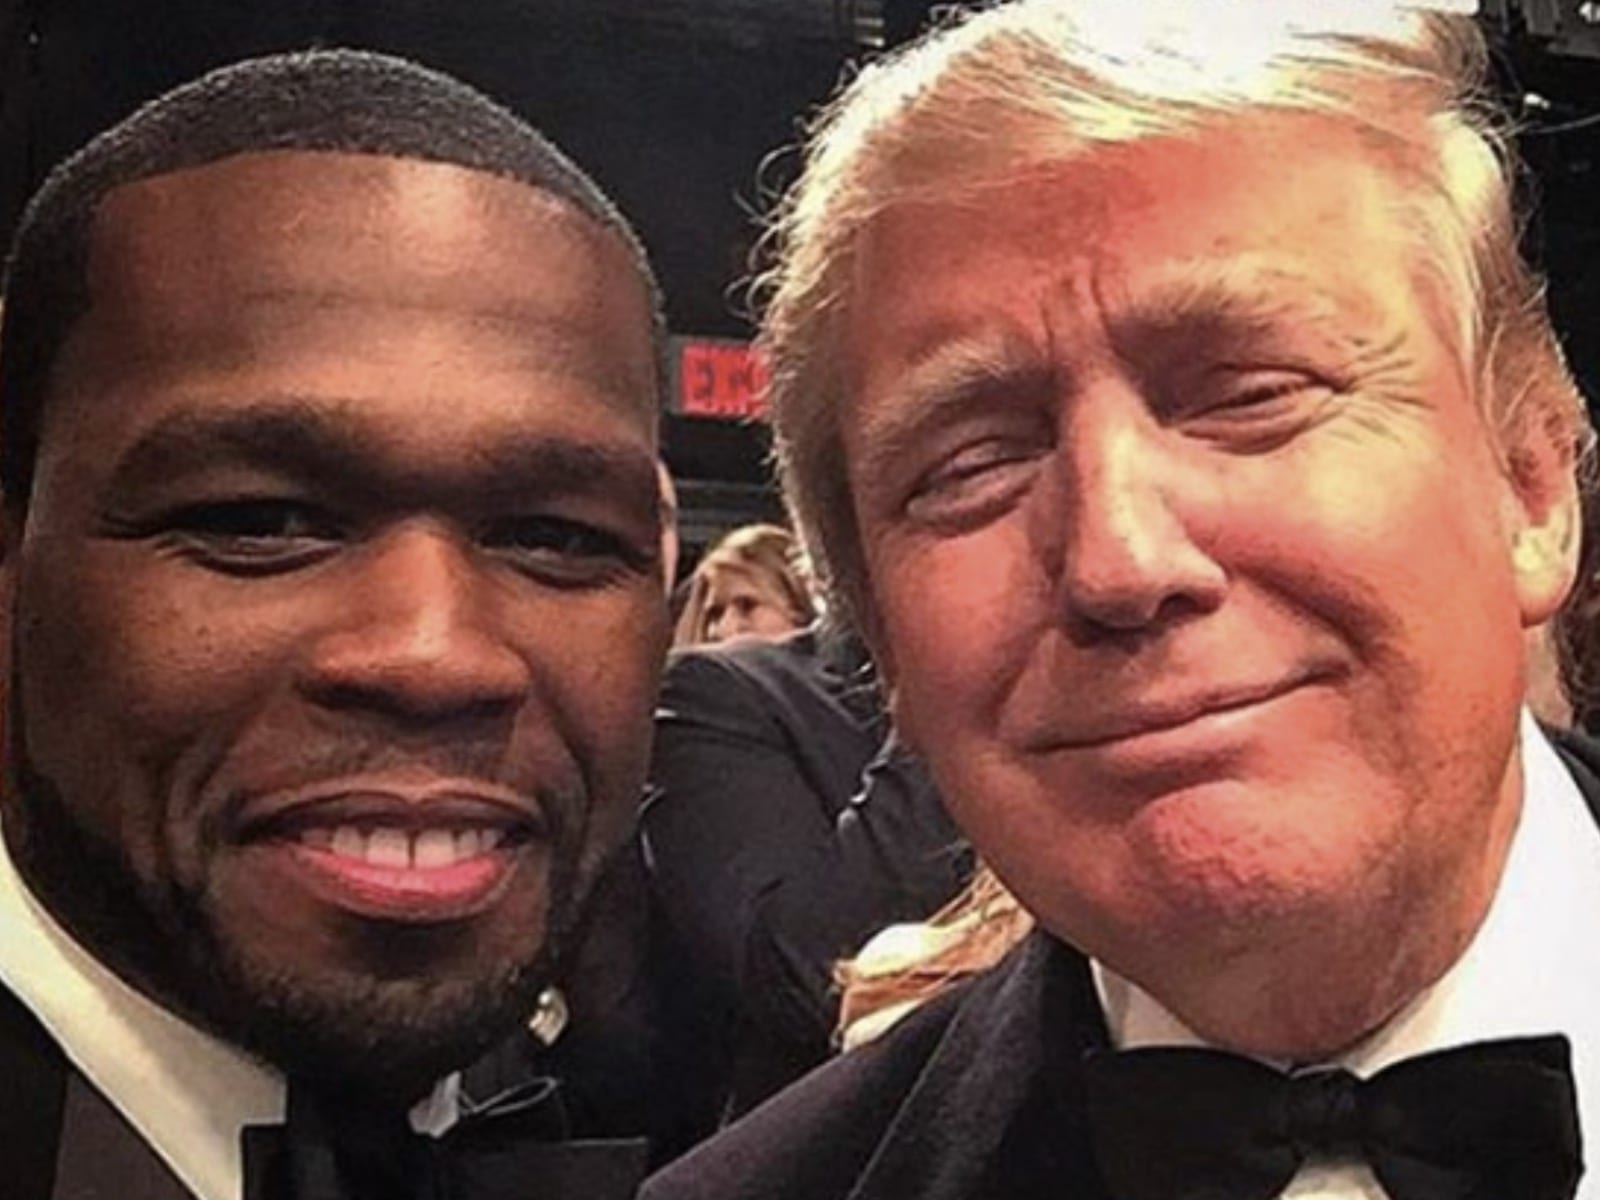 50 Cent Says Donald Trump Is 'Going To Jail' And Slams Him For Demanding That The Votes Counting Be Stopped!